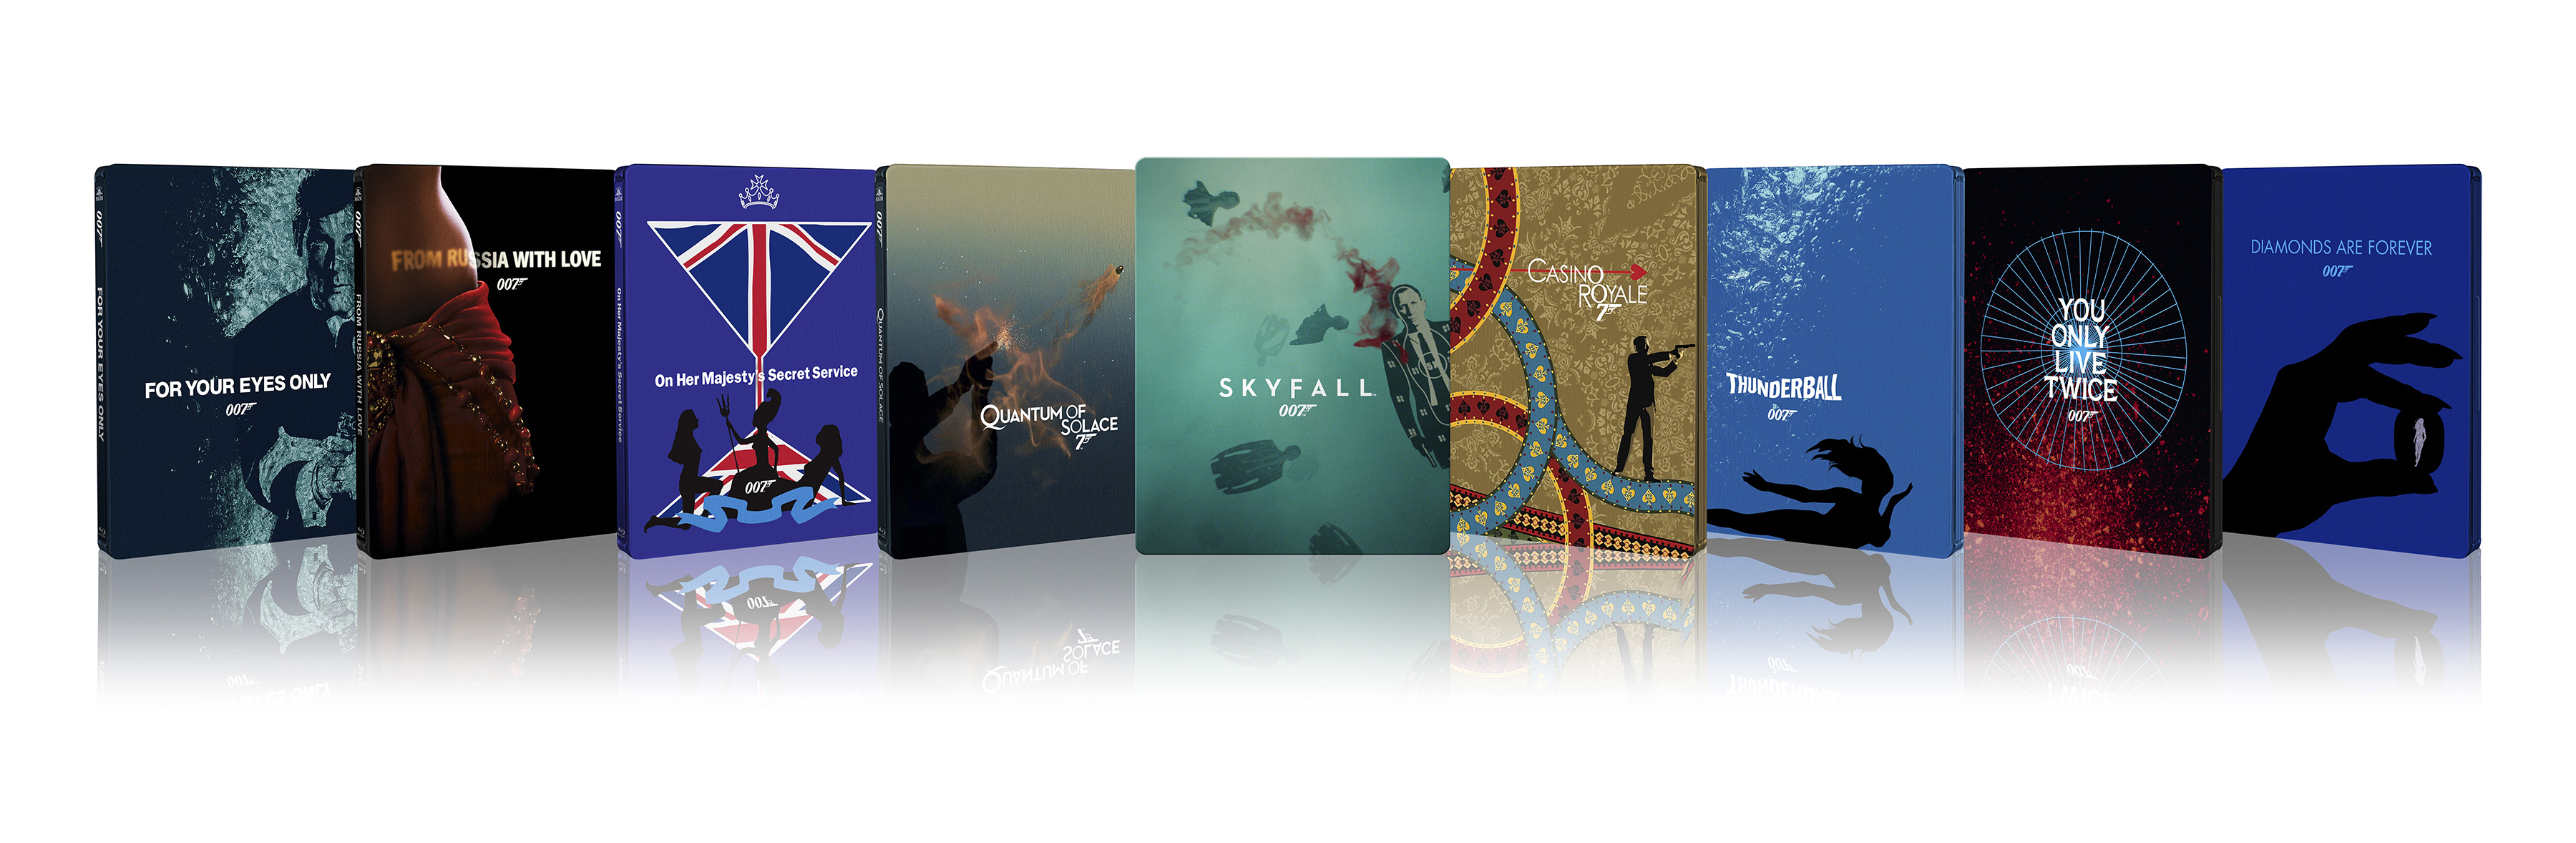 007 James Bond SteelBooks 2015